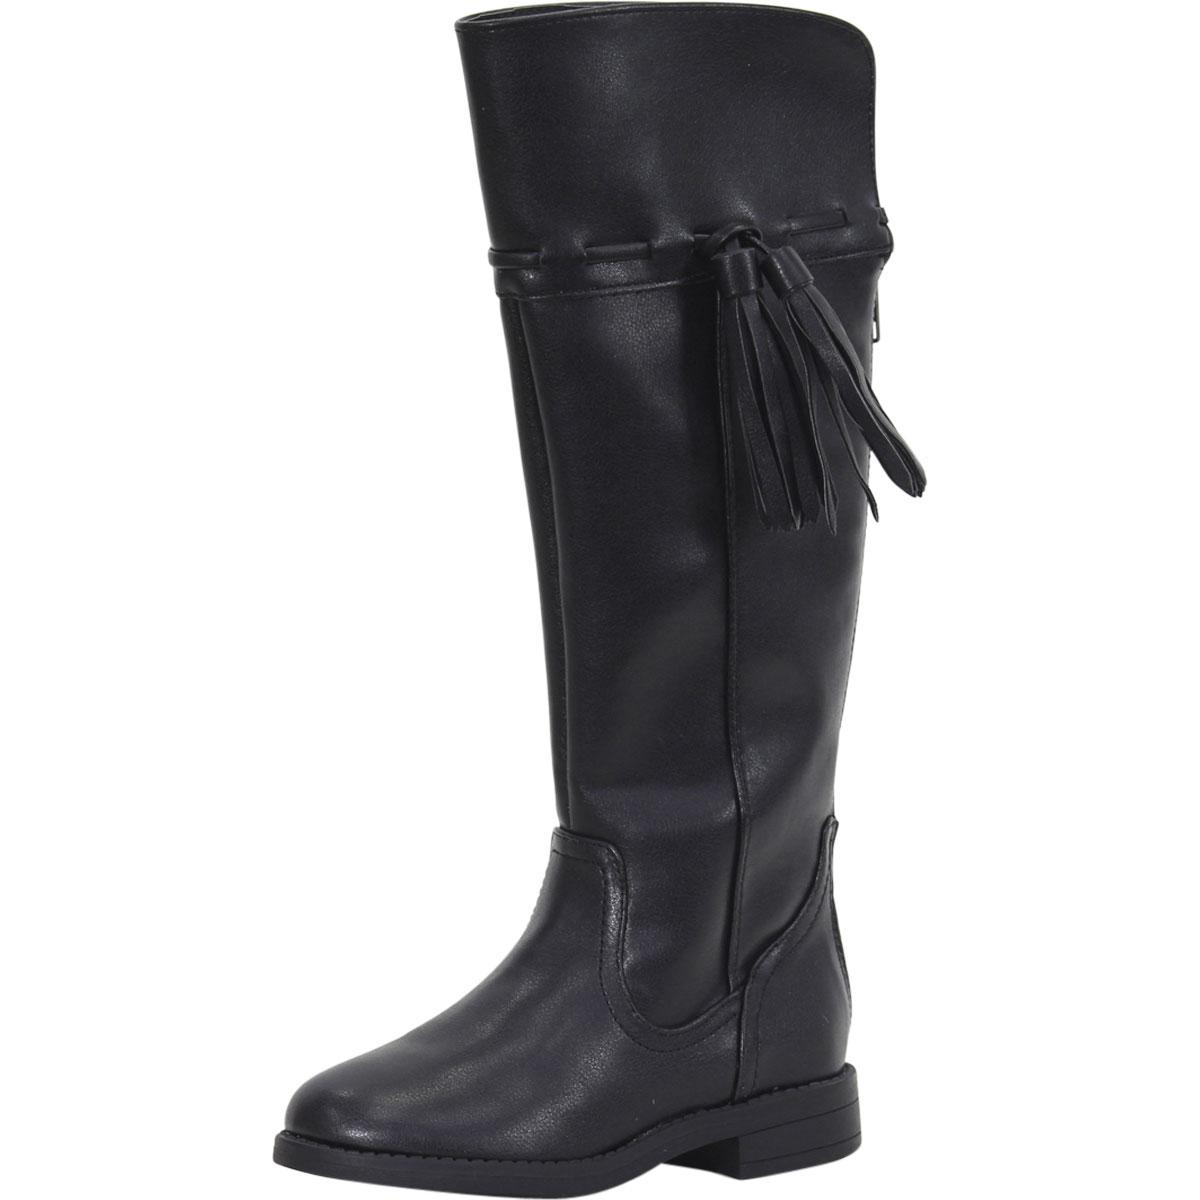 Image of Sugar Little/Big Girl's Cannoli Over The Knee Boots Shoes - Black - 11 M US Little Kid